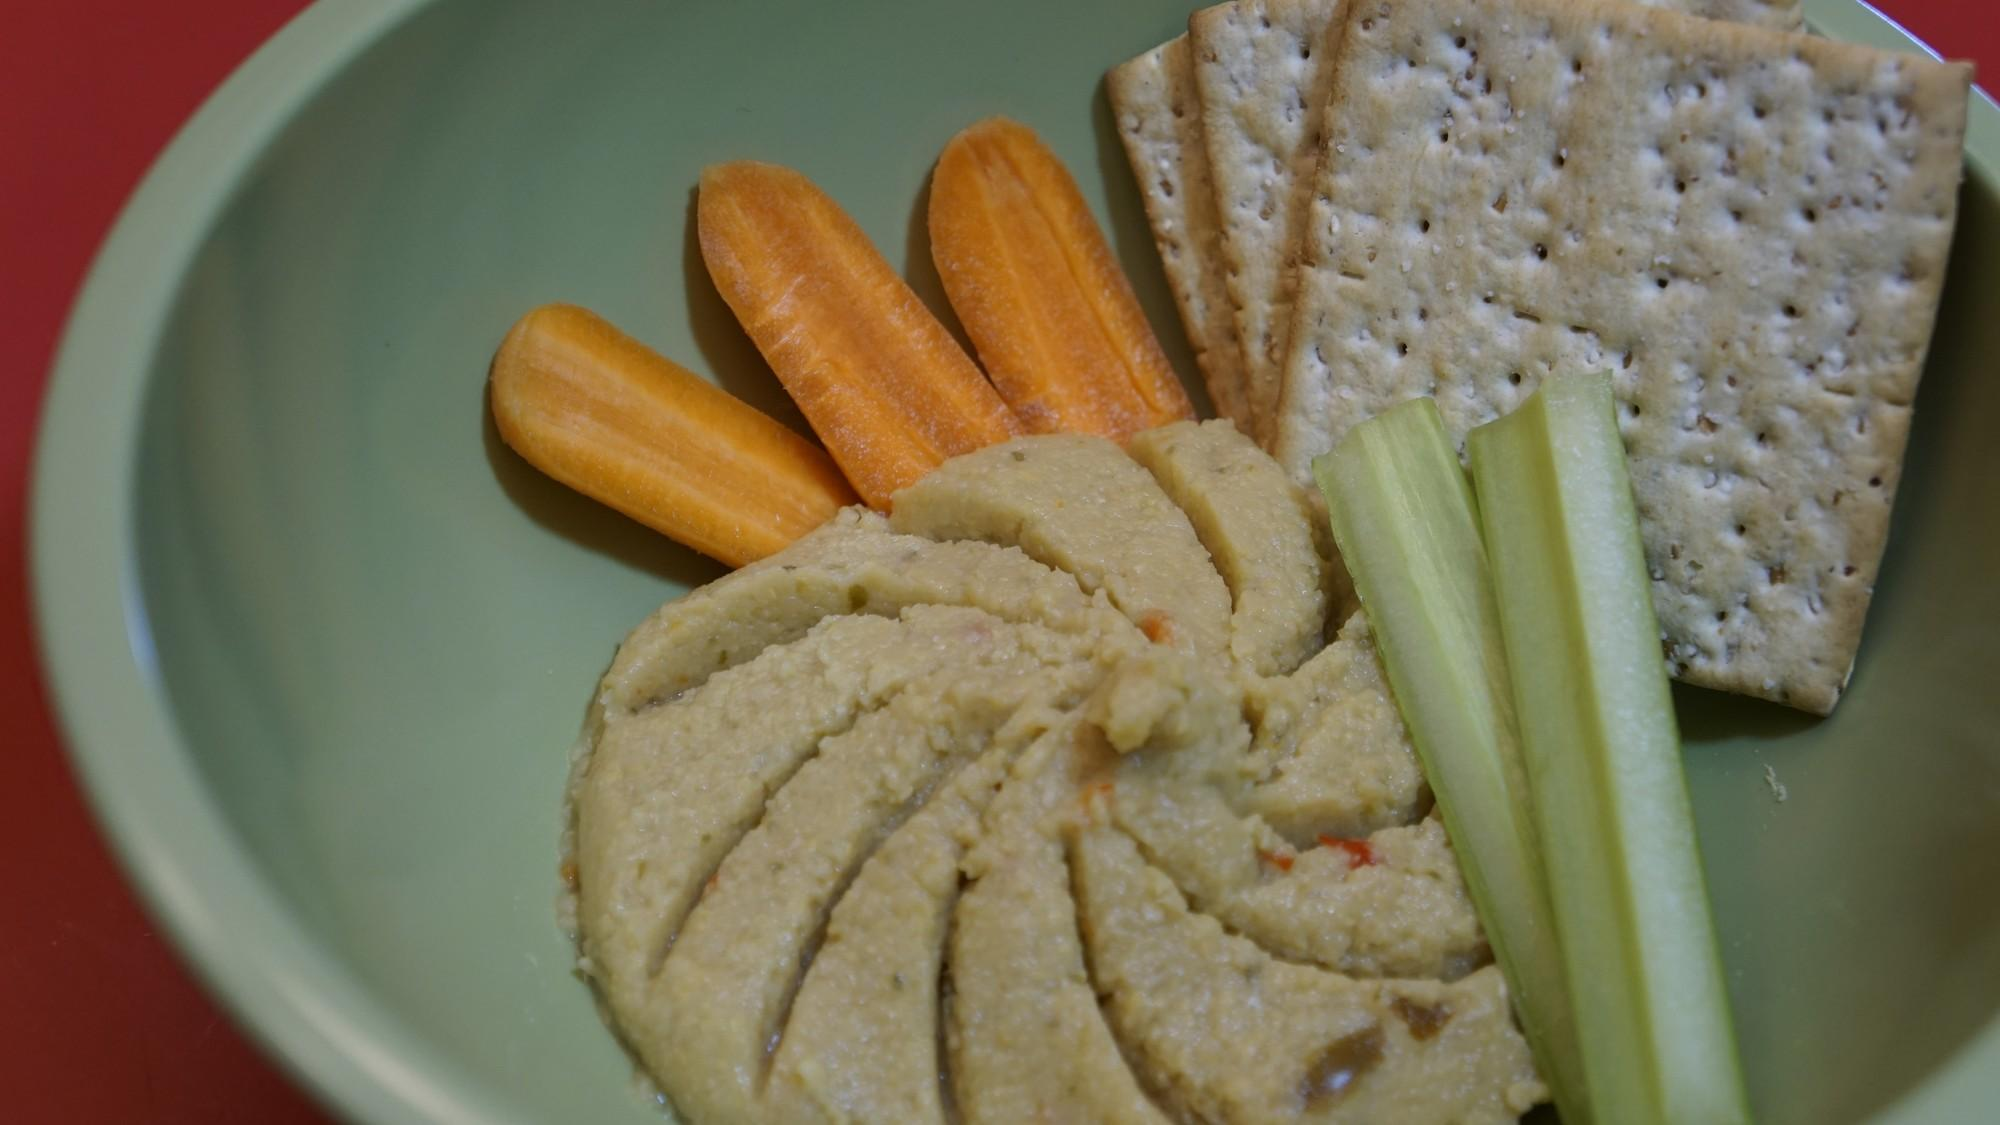 close up of hummus platter with carrots and crackers and celery